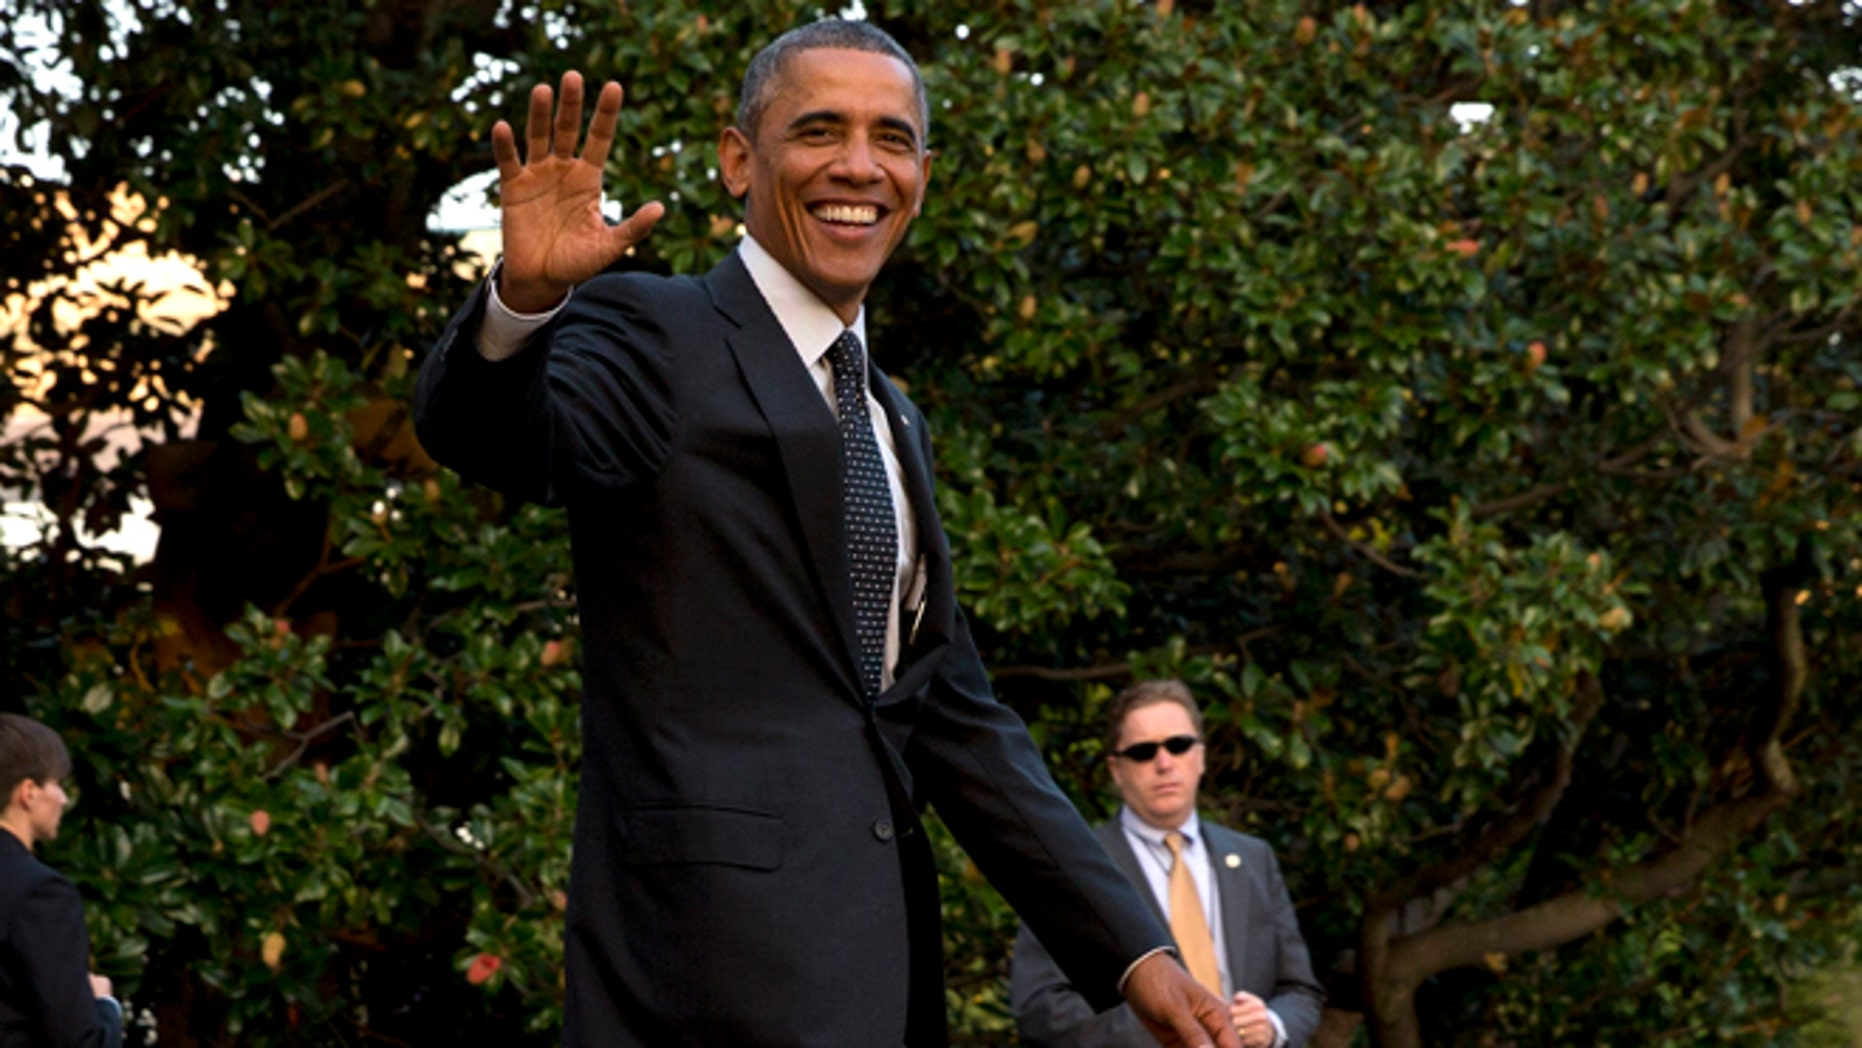 In this Wednesday, Oct. 1, 2014 photo, President Barack Obama waves as he leaves the White House to board the Marine One helicopter en route to Chicago from Washington,